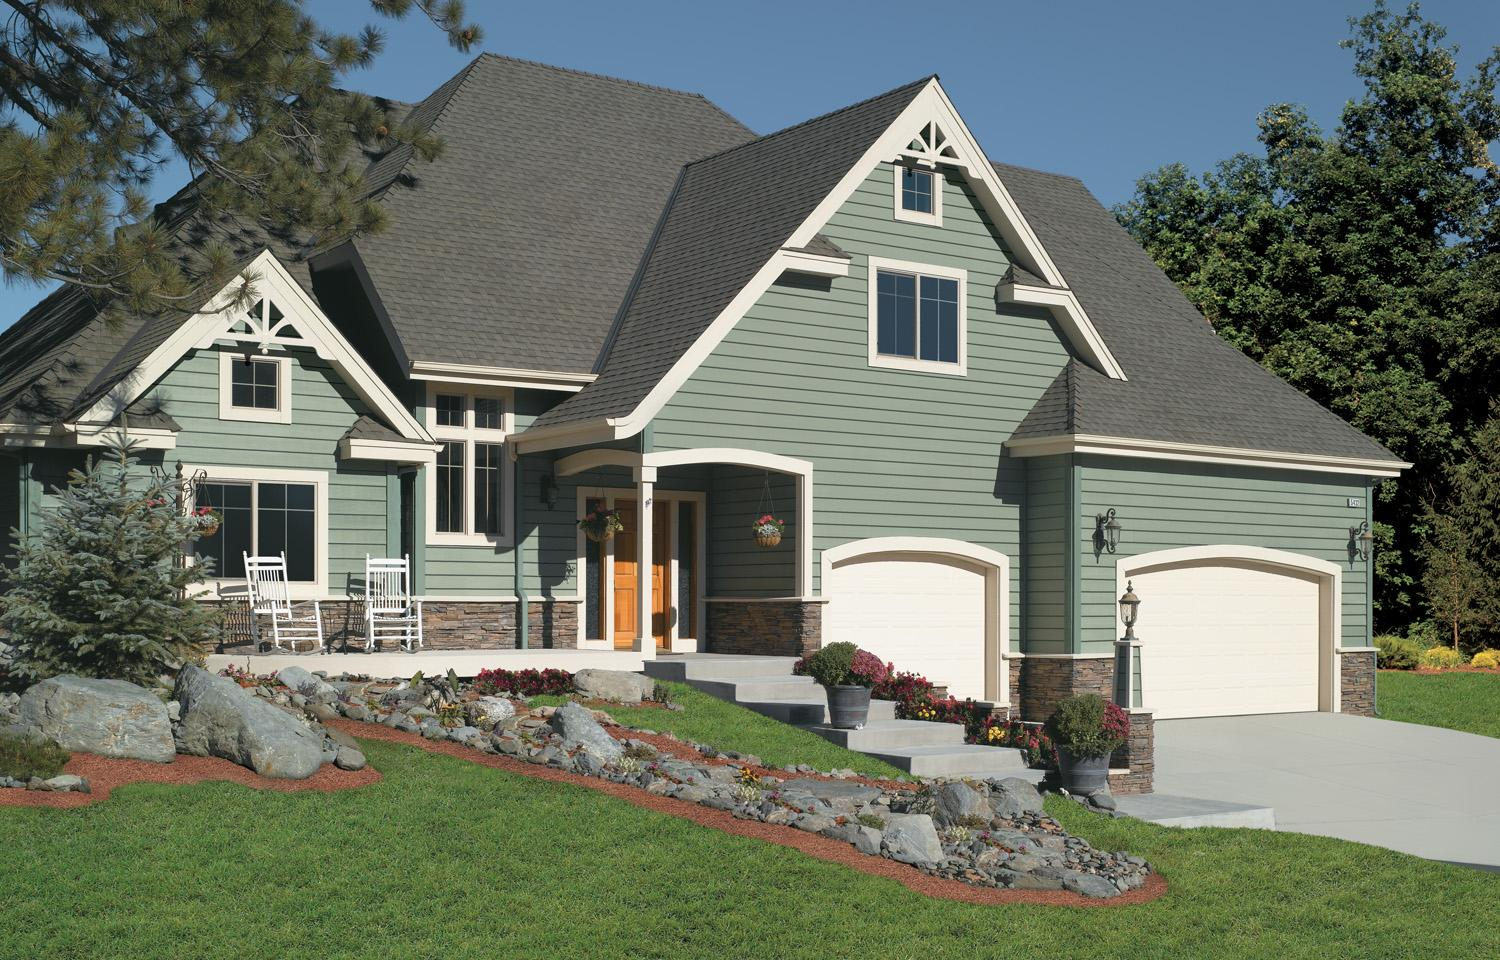 4 Types Of Fiber Cement Siding For Your Home Pros And Cons